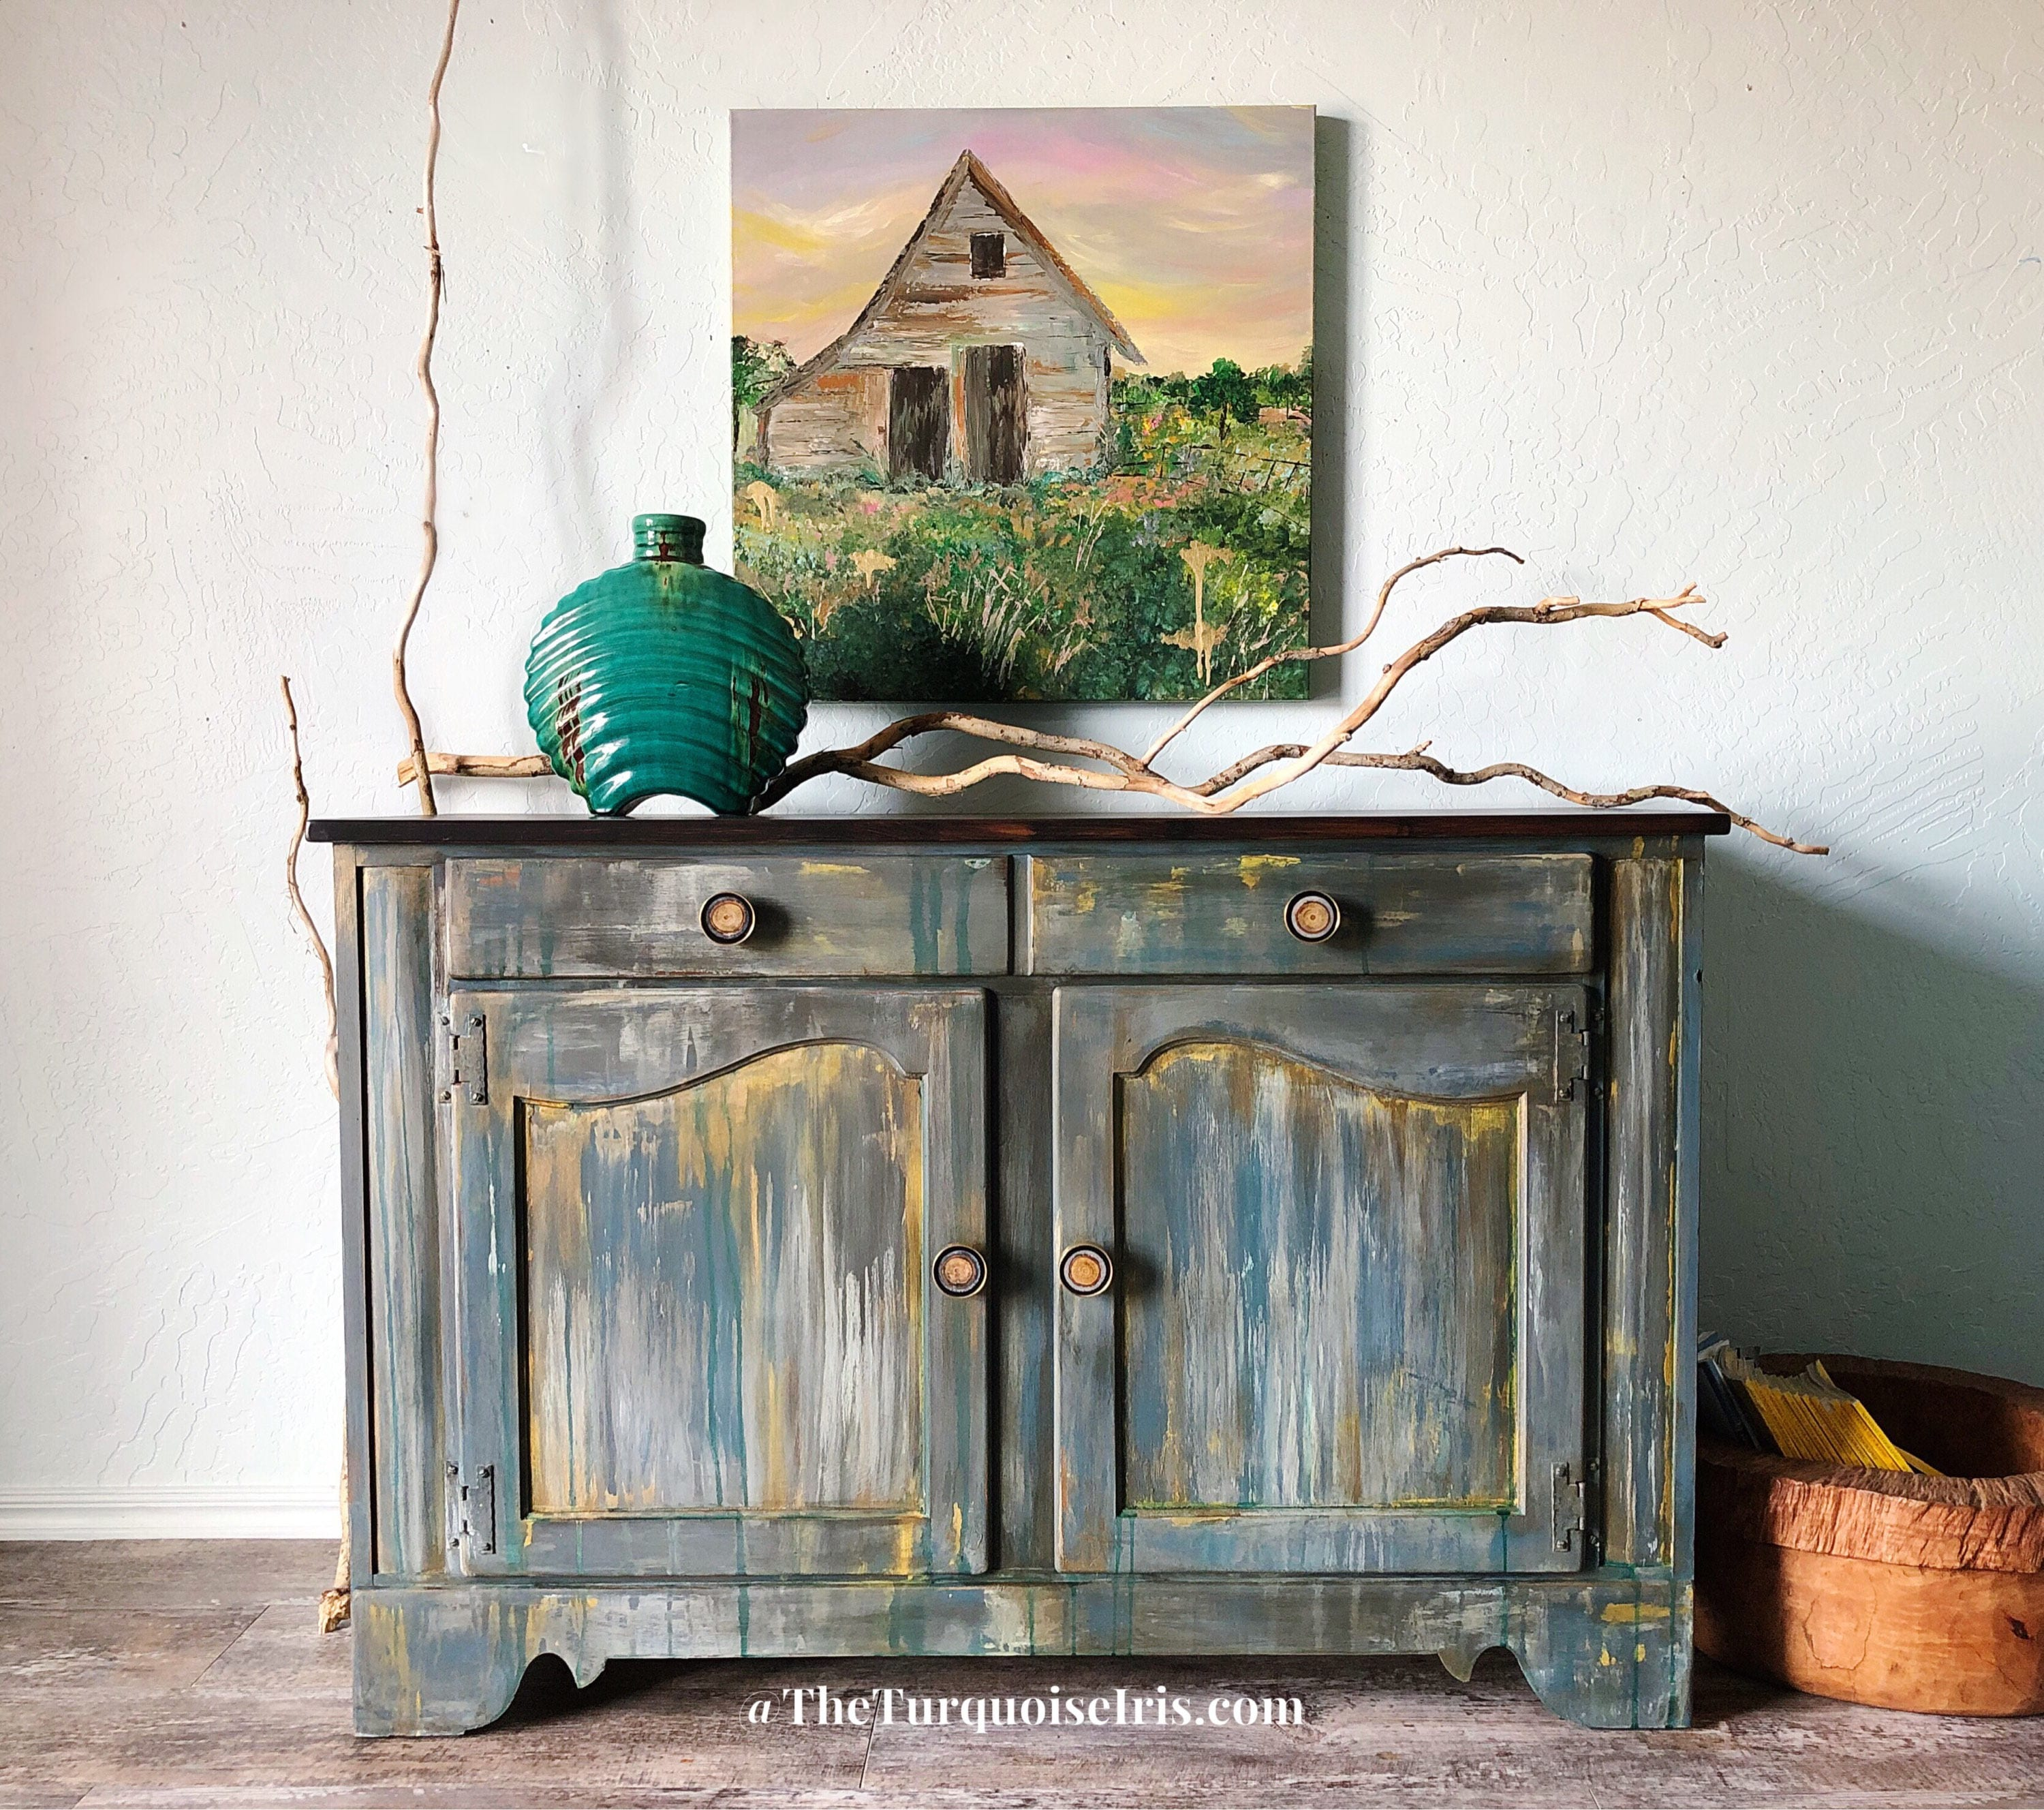 The Turquoise Iris - Rustic Boho Farmhouse Buffet